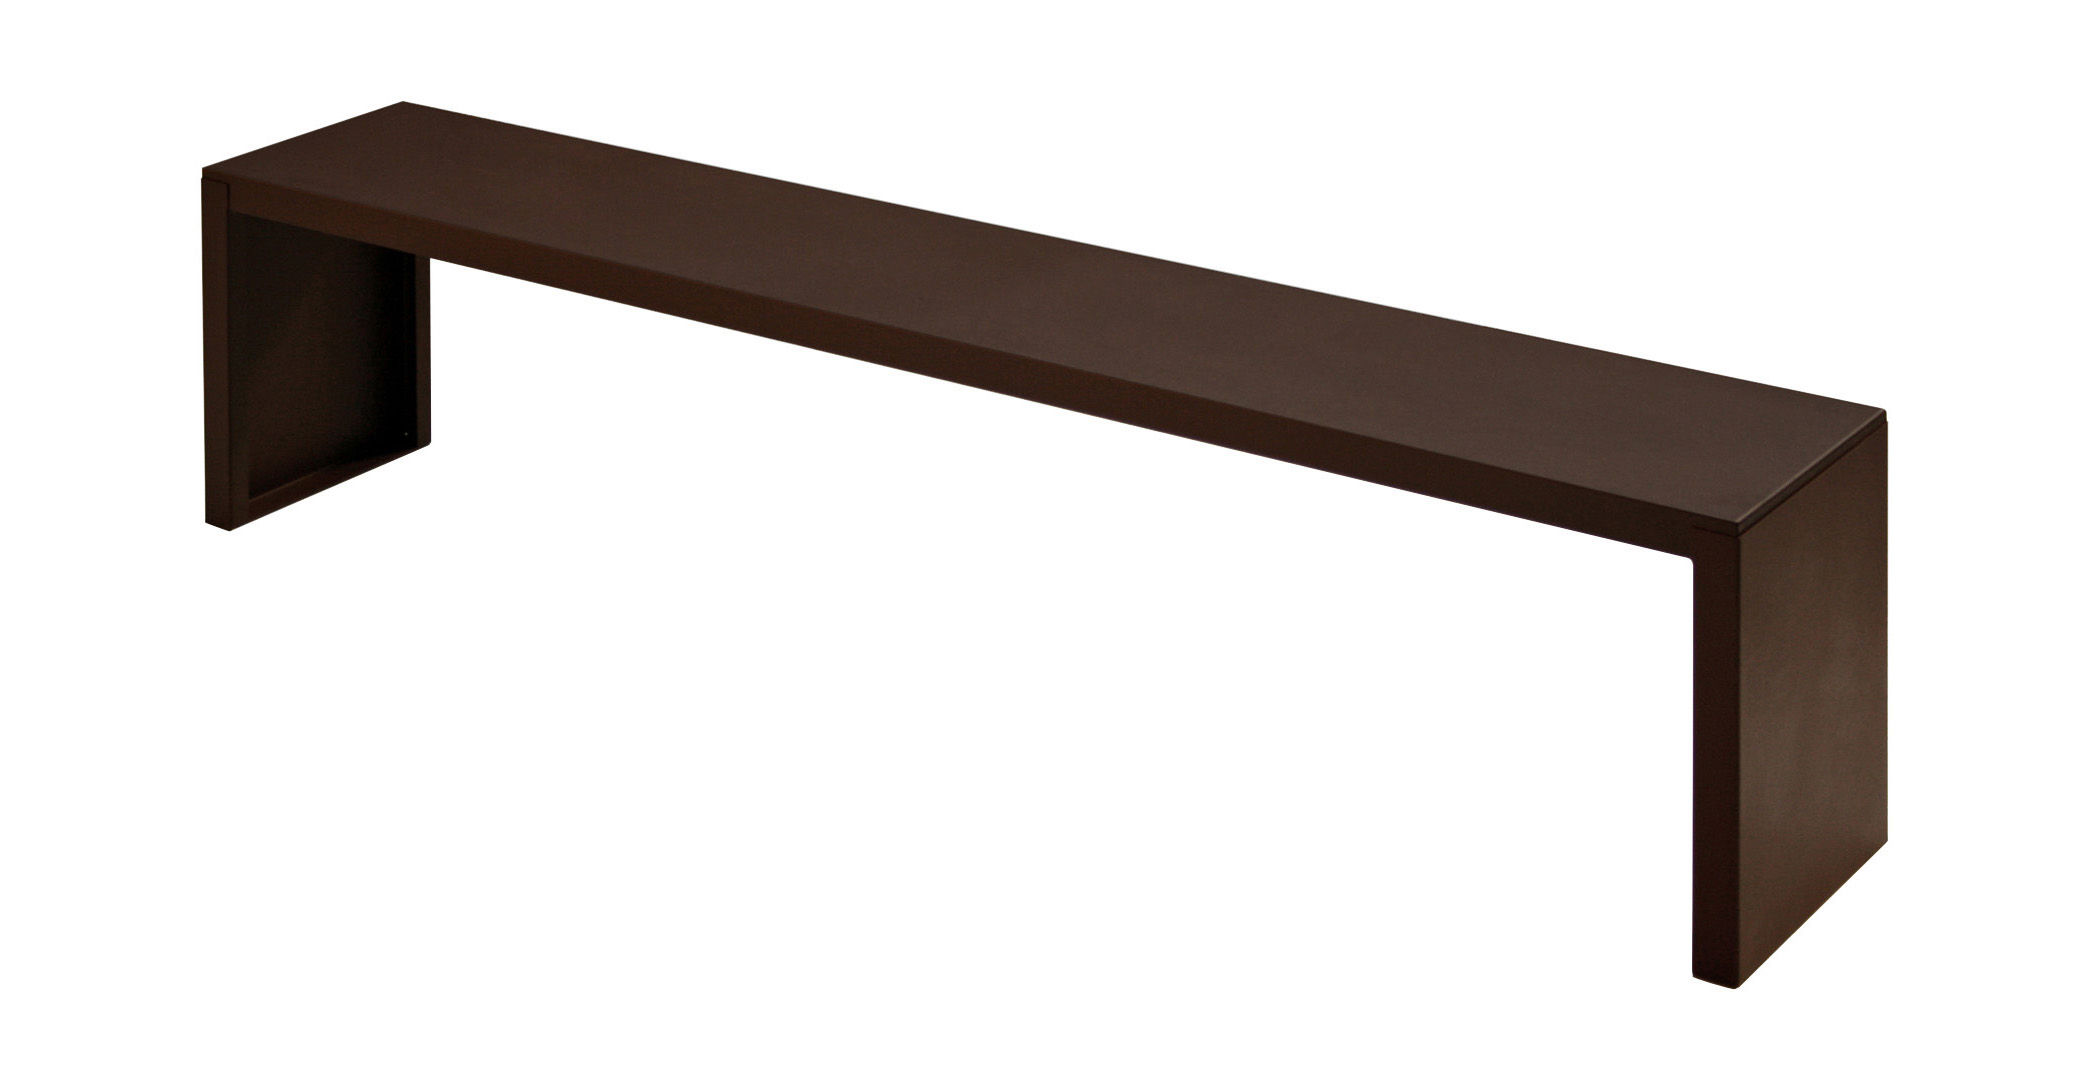 Furniture - Benches - Rusty Irony Bench - L 130 cm by Zeus - W 130 cm - Rust - Phosphated steel